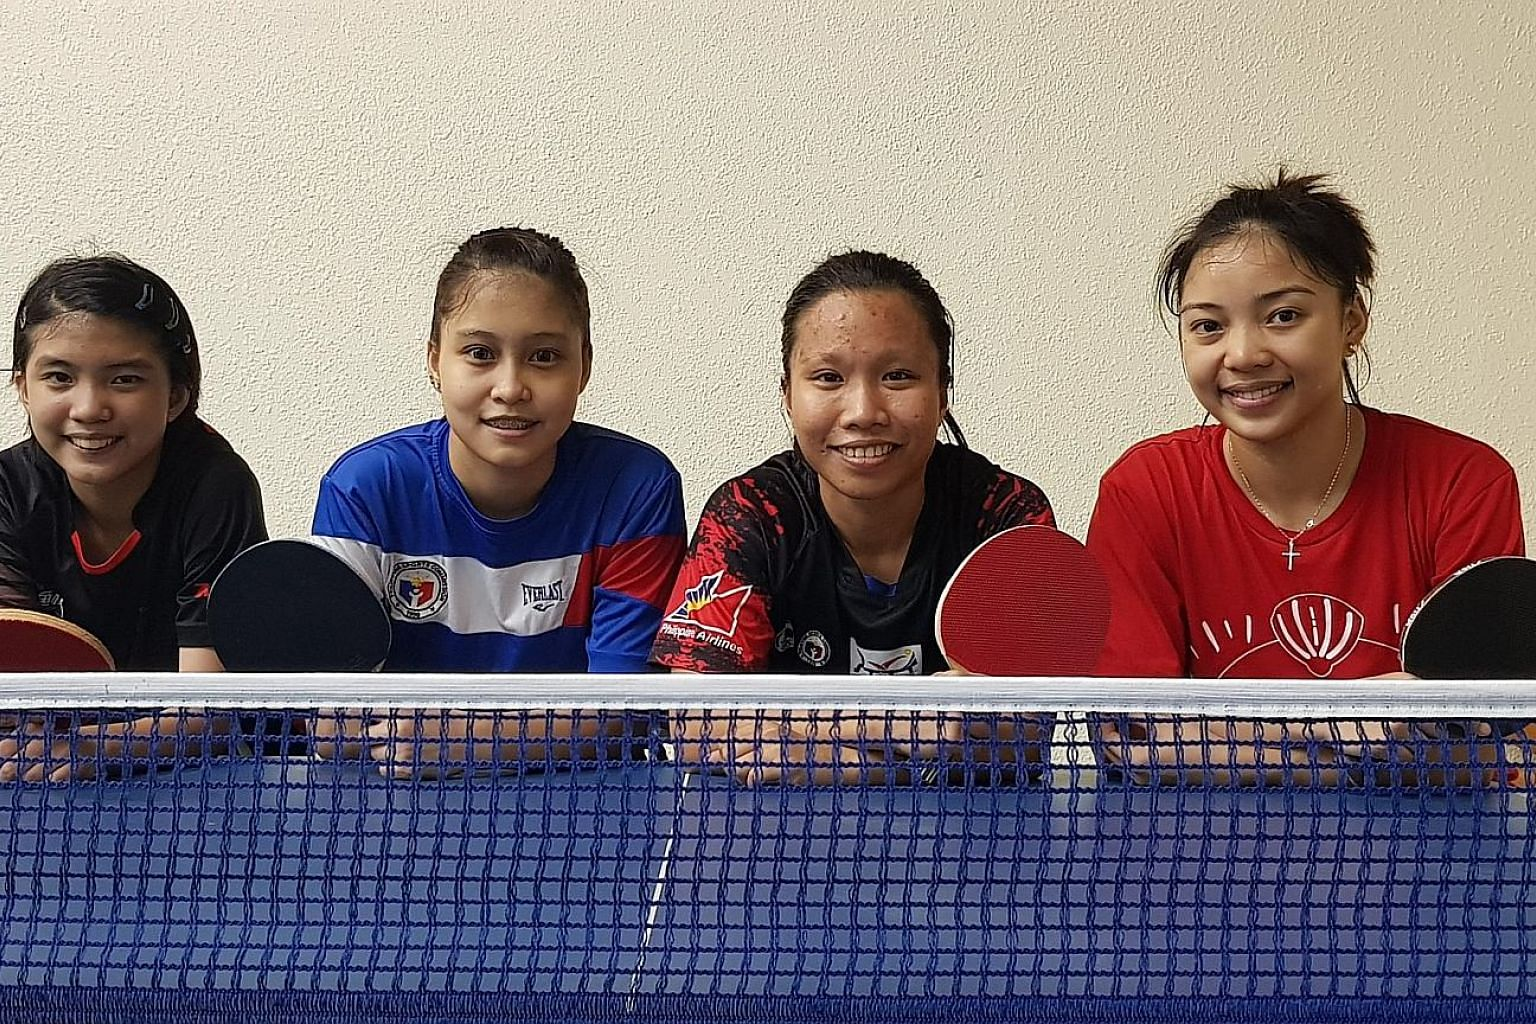 Philippine women's table tennis players (from far left) Kheith Cruz, Jannah Romero, Rose Fadol and Emy Rose Dael are aiming for their first medal in the sport at the Games. And if Romero, the highest-ranked among them, succeeds, she will dedicate it to th